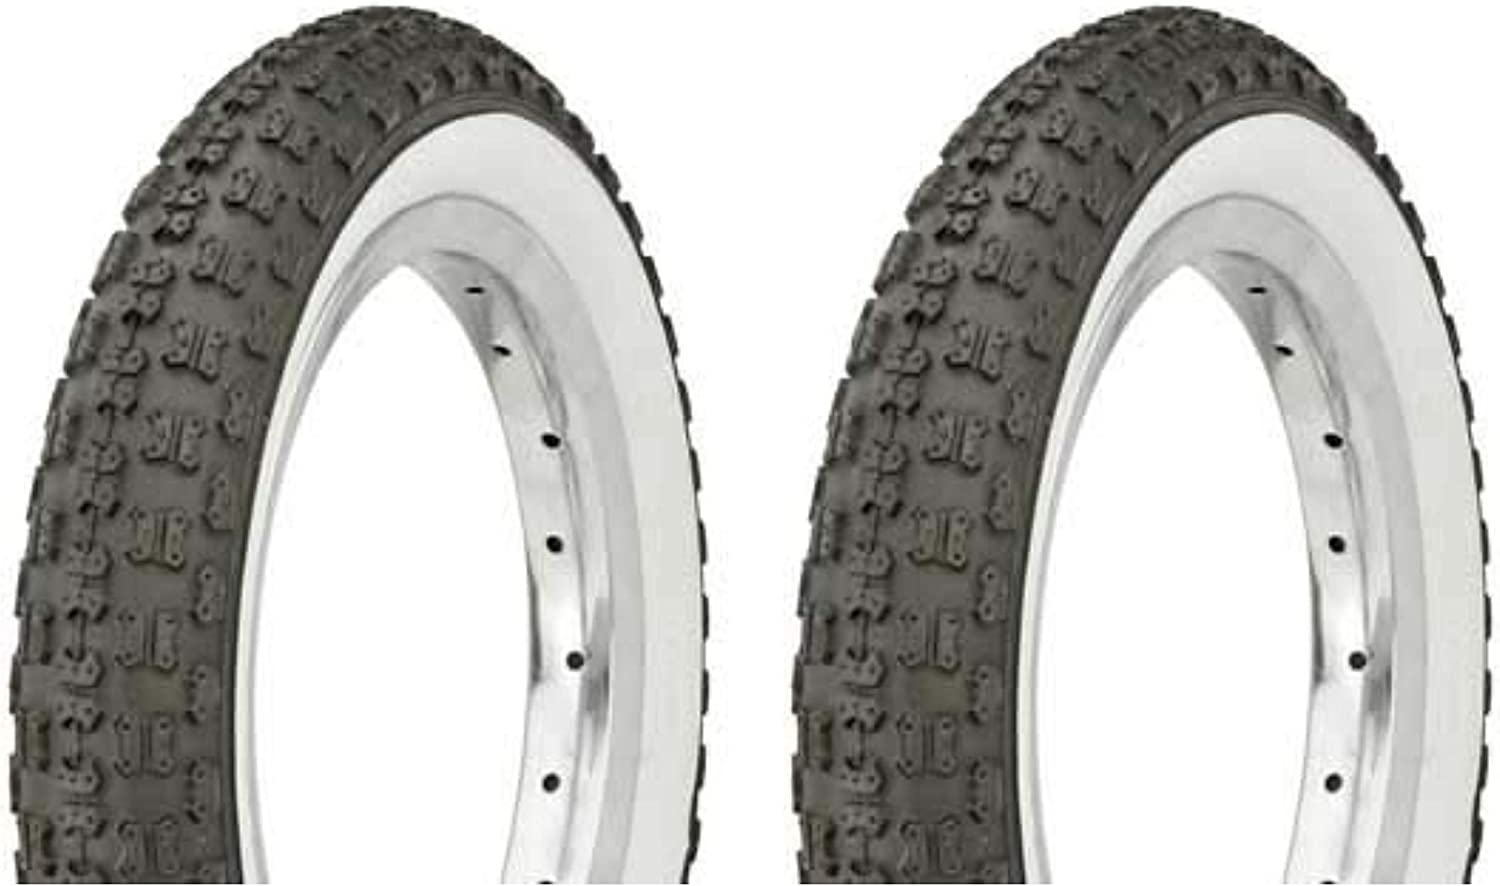 Lowrider Tire Set. 2 Tires. Two Tires 4